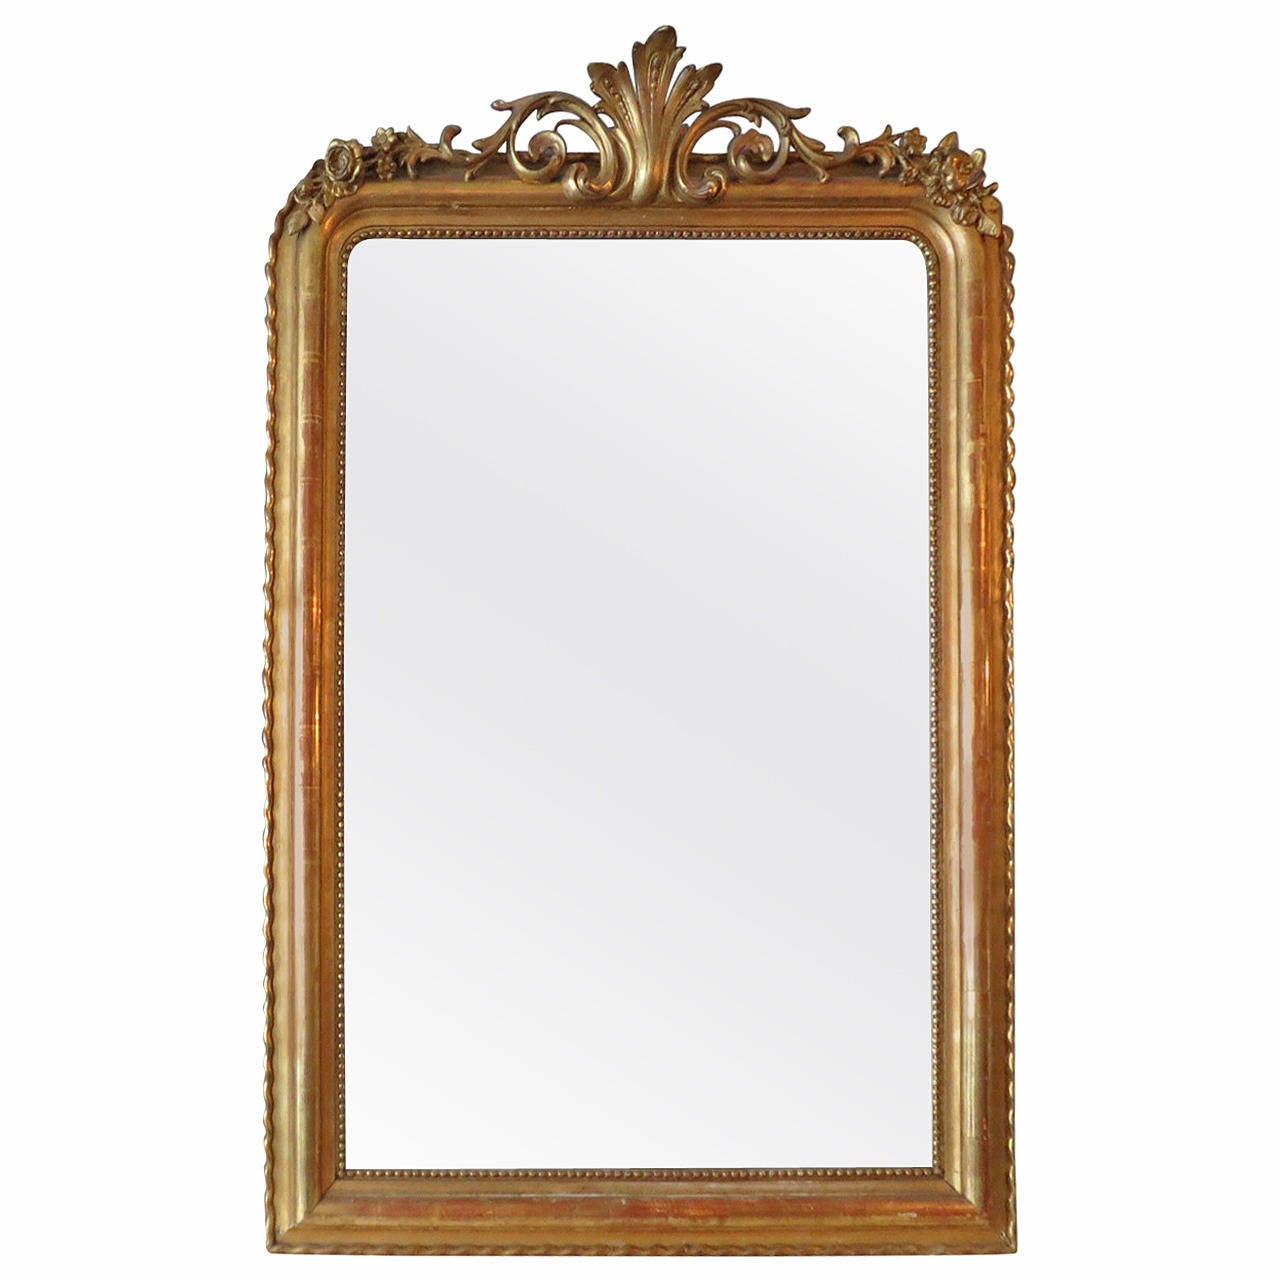 Antique french gold gilt mirror at 1stdibs for French mirror